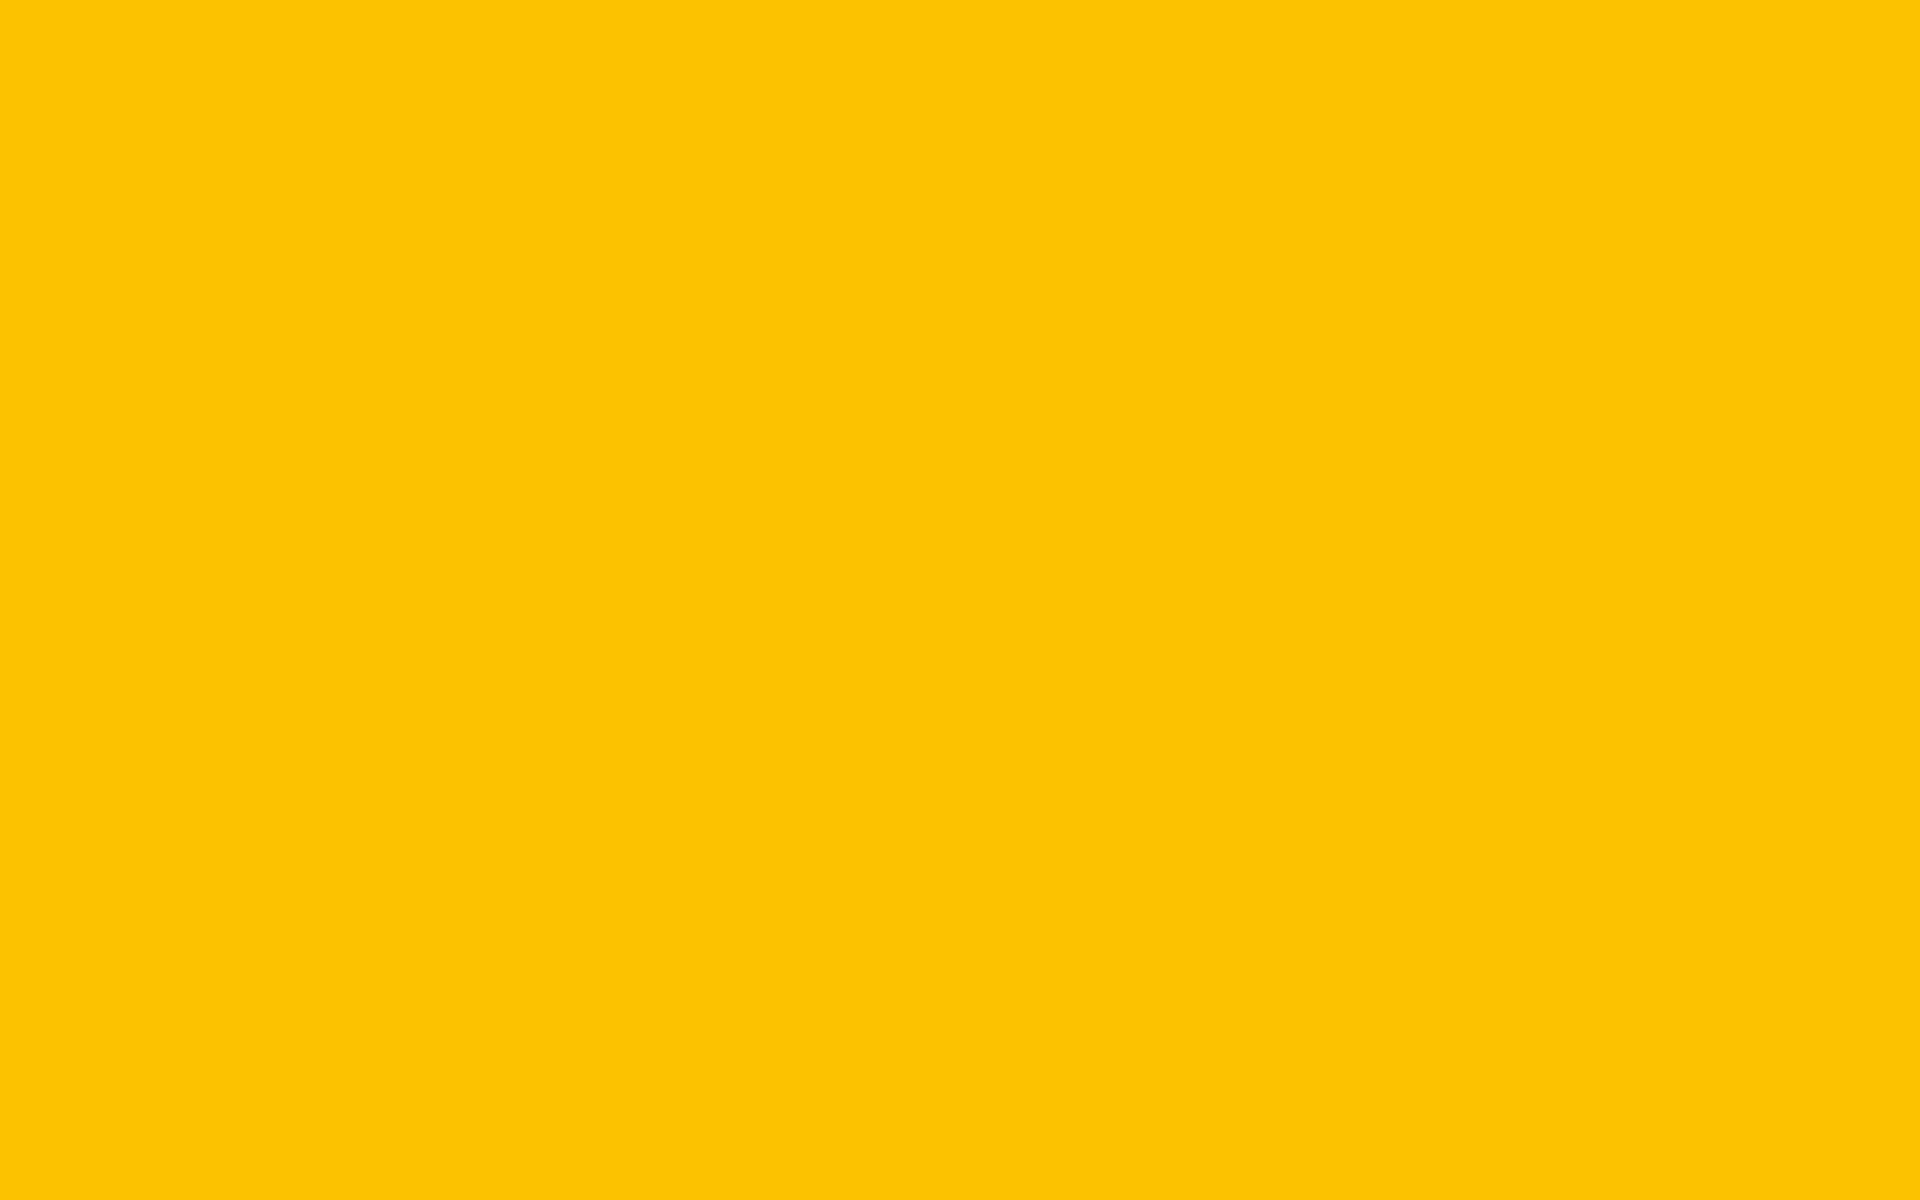 1920x1200 resolution Golden Poppy solid color background view 1920x1200